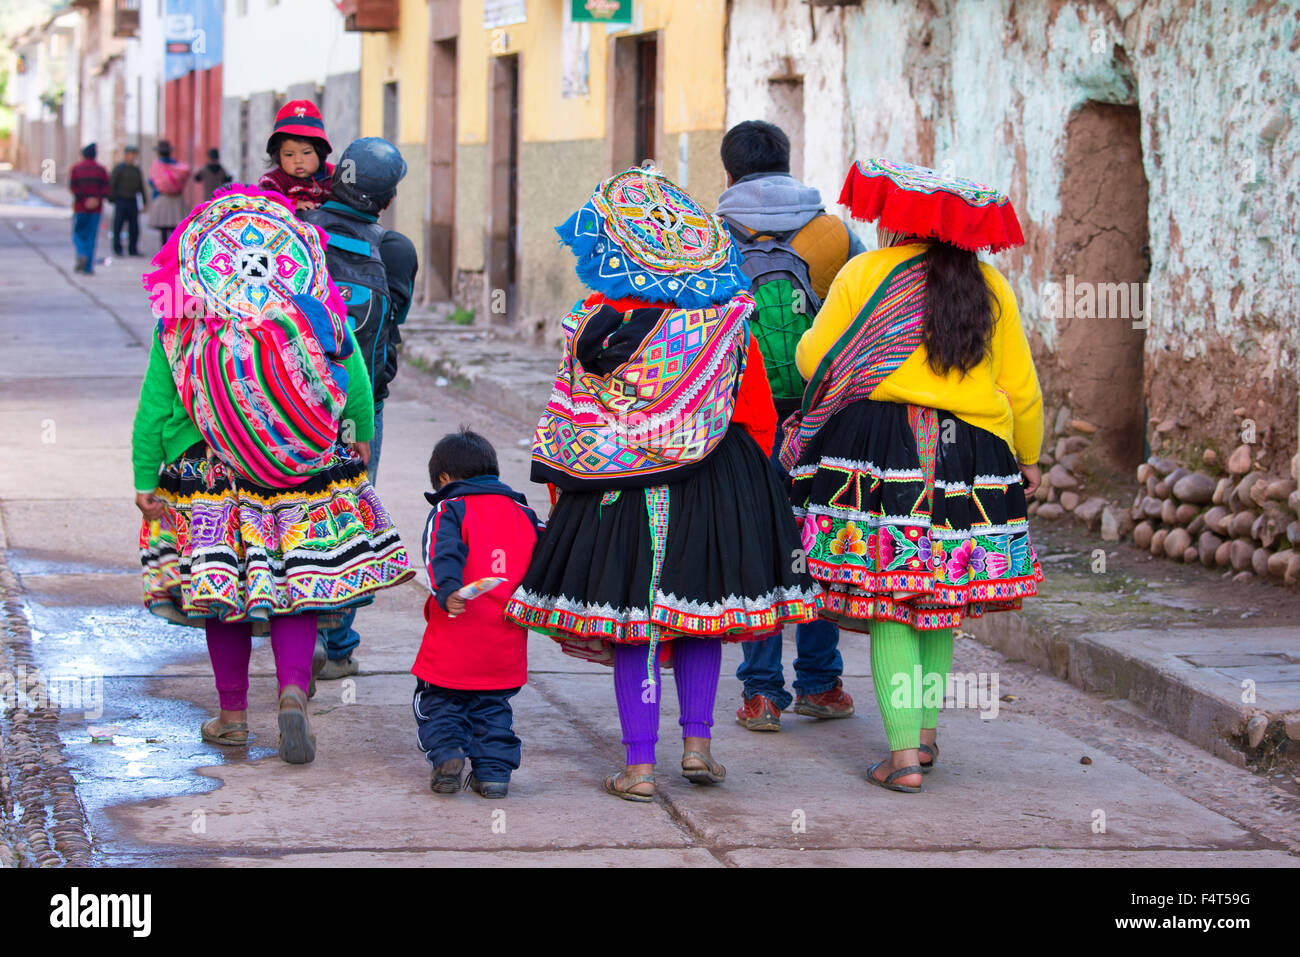 South America Latin America Peru Cuzco Native Village